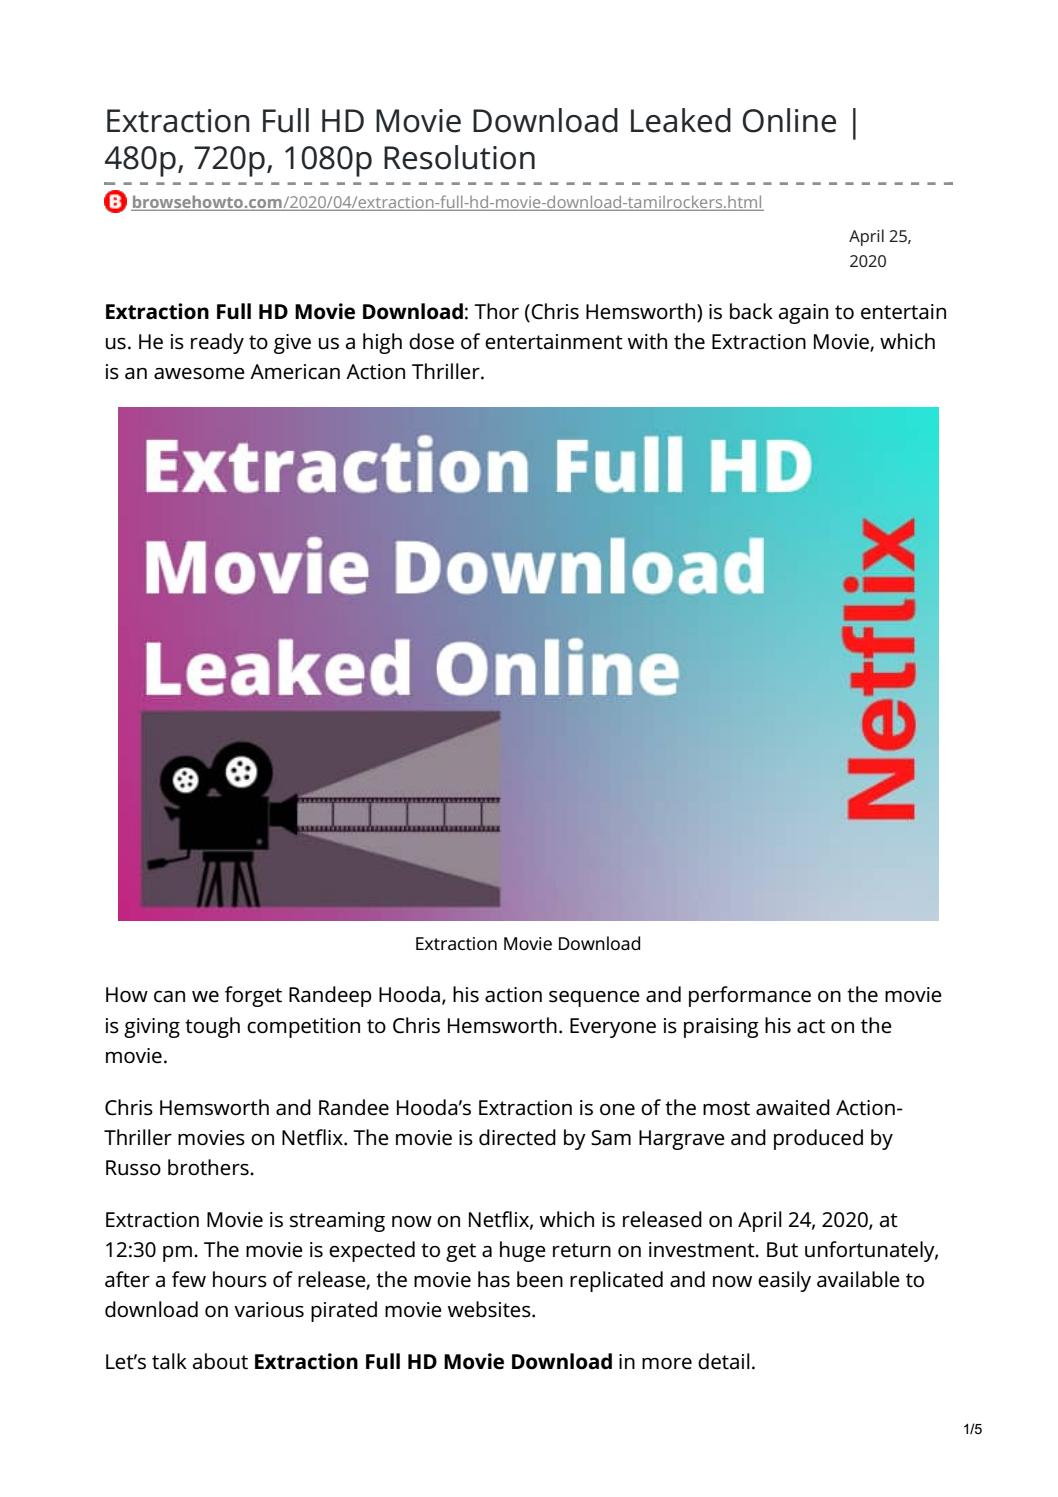 Extraction Full Hd Movie Download Leaked Online 480p 720p 1080p Resolution By Raja Kashyap Issuu